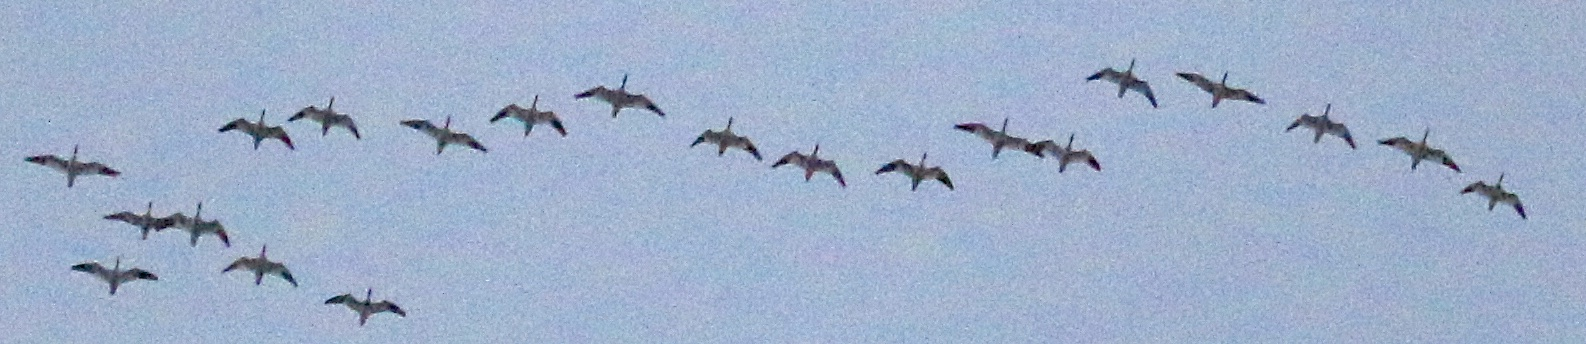 Um hmmm they ARE Snow Geese! Terrible pic of super birds. Black Dirt Region 12/12/14.